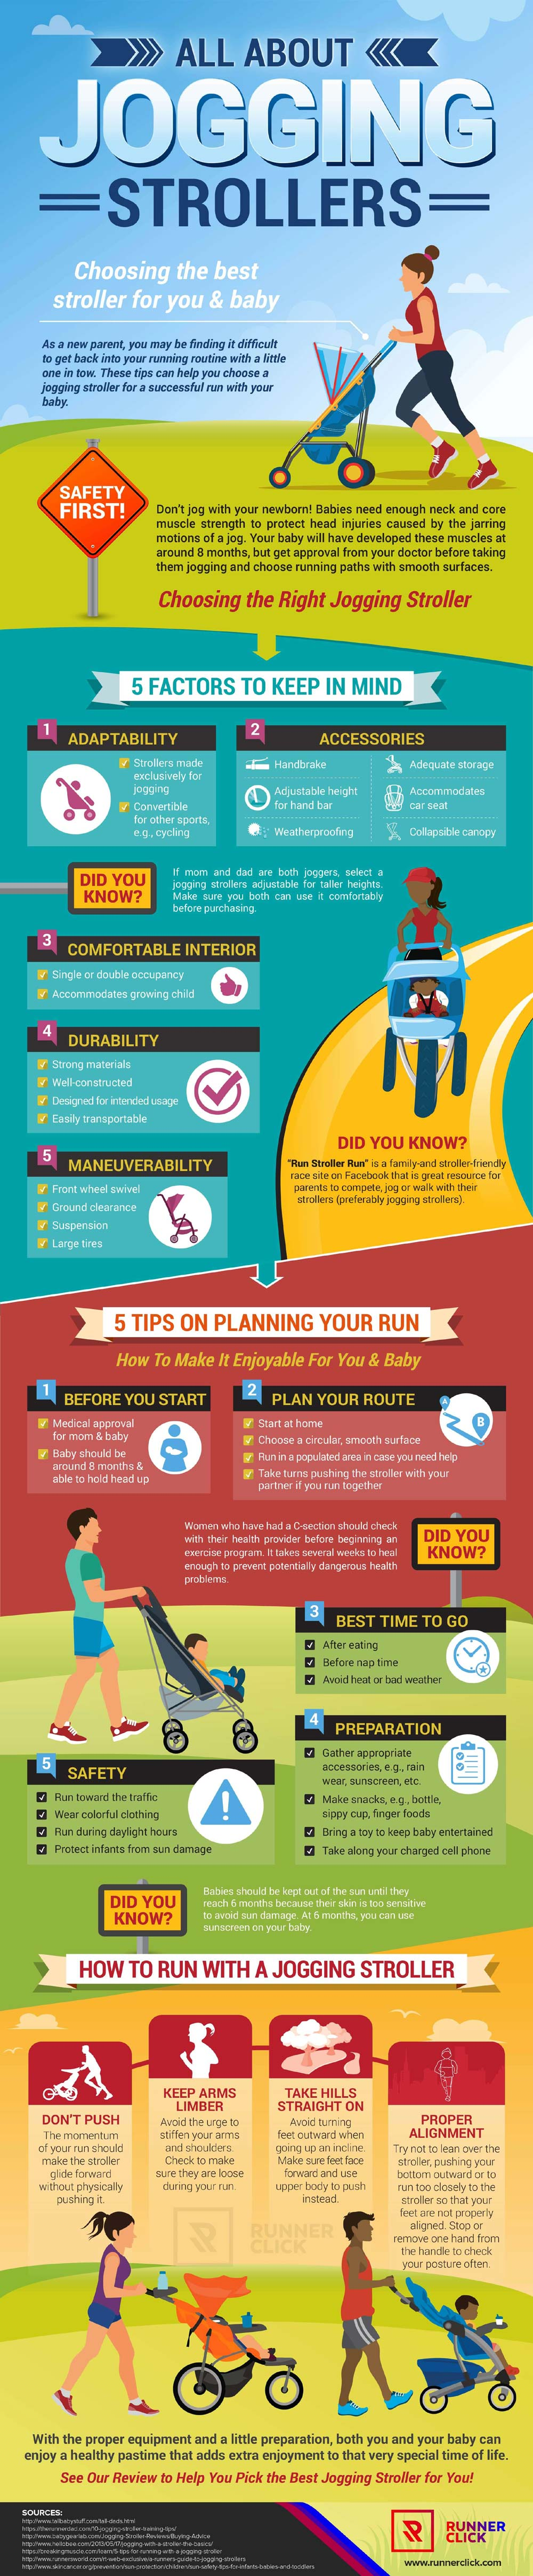 How to Run Safely with a Jogging Stroller